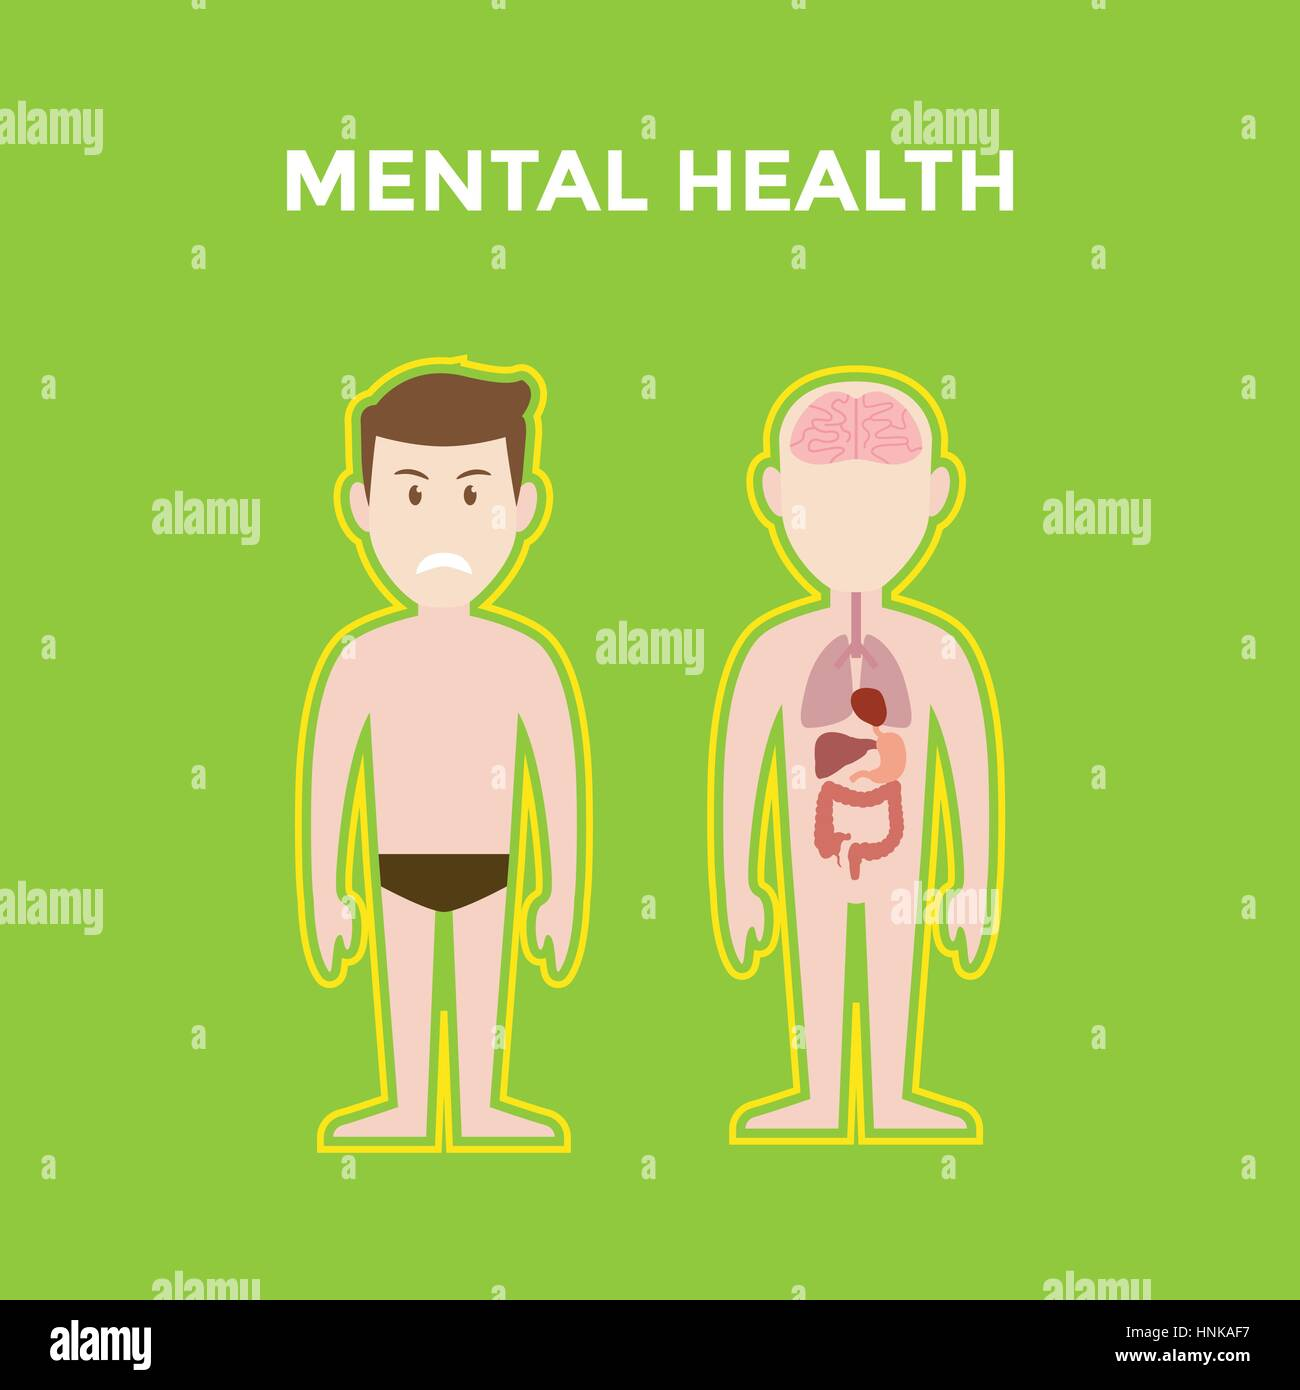 mental health illustration with two bodies shows its organ such brain, lung, heart and liver and also a smiling - Stock Vector